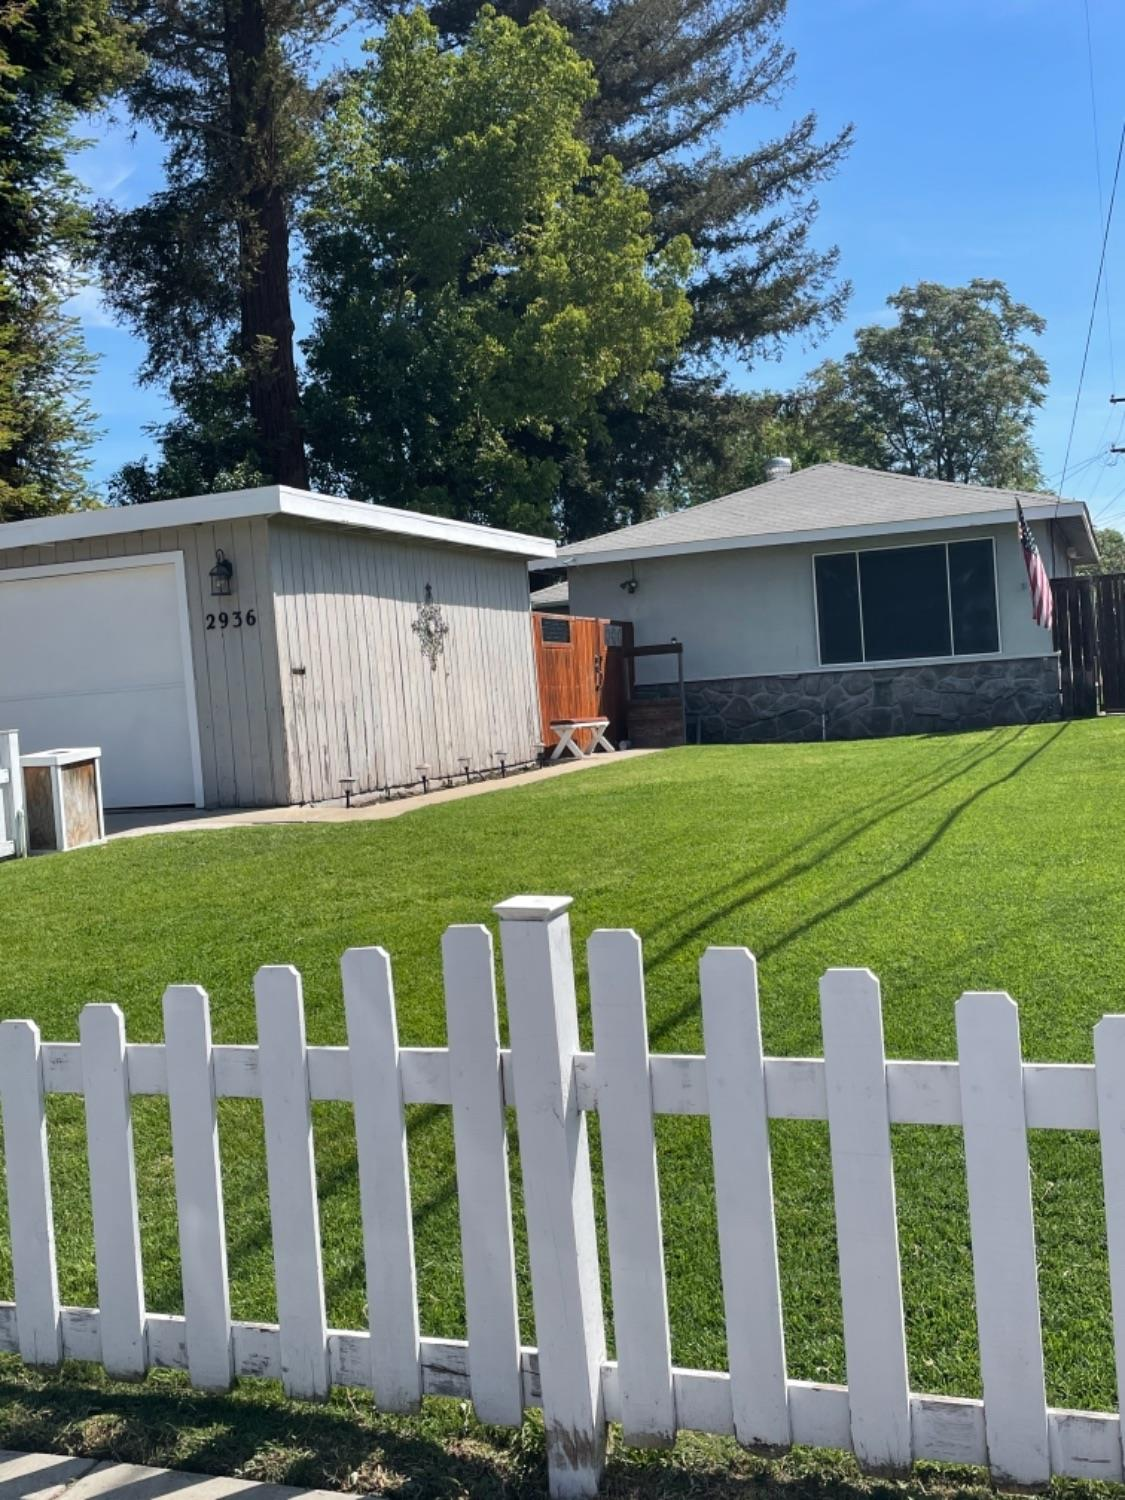 Photo of 2936 Lassen Avenue, Stockton, CA 95204